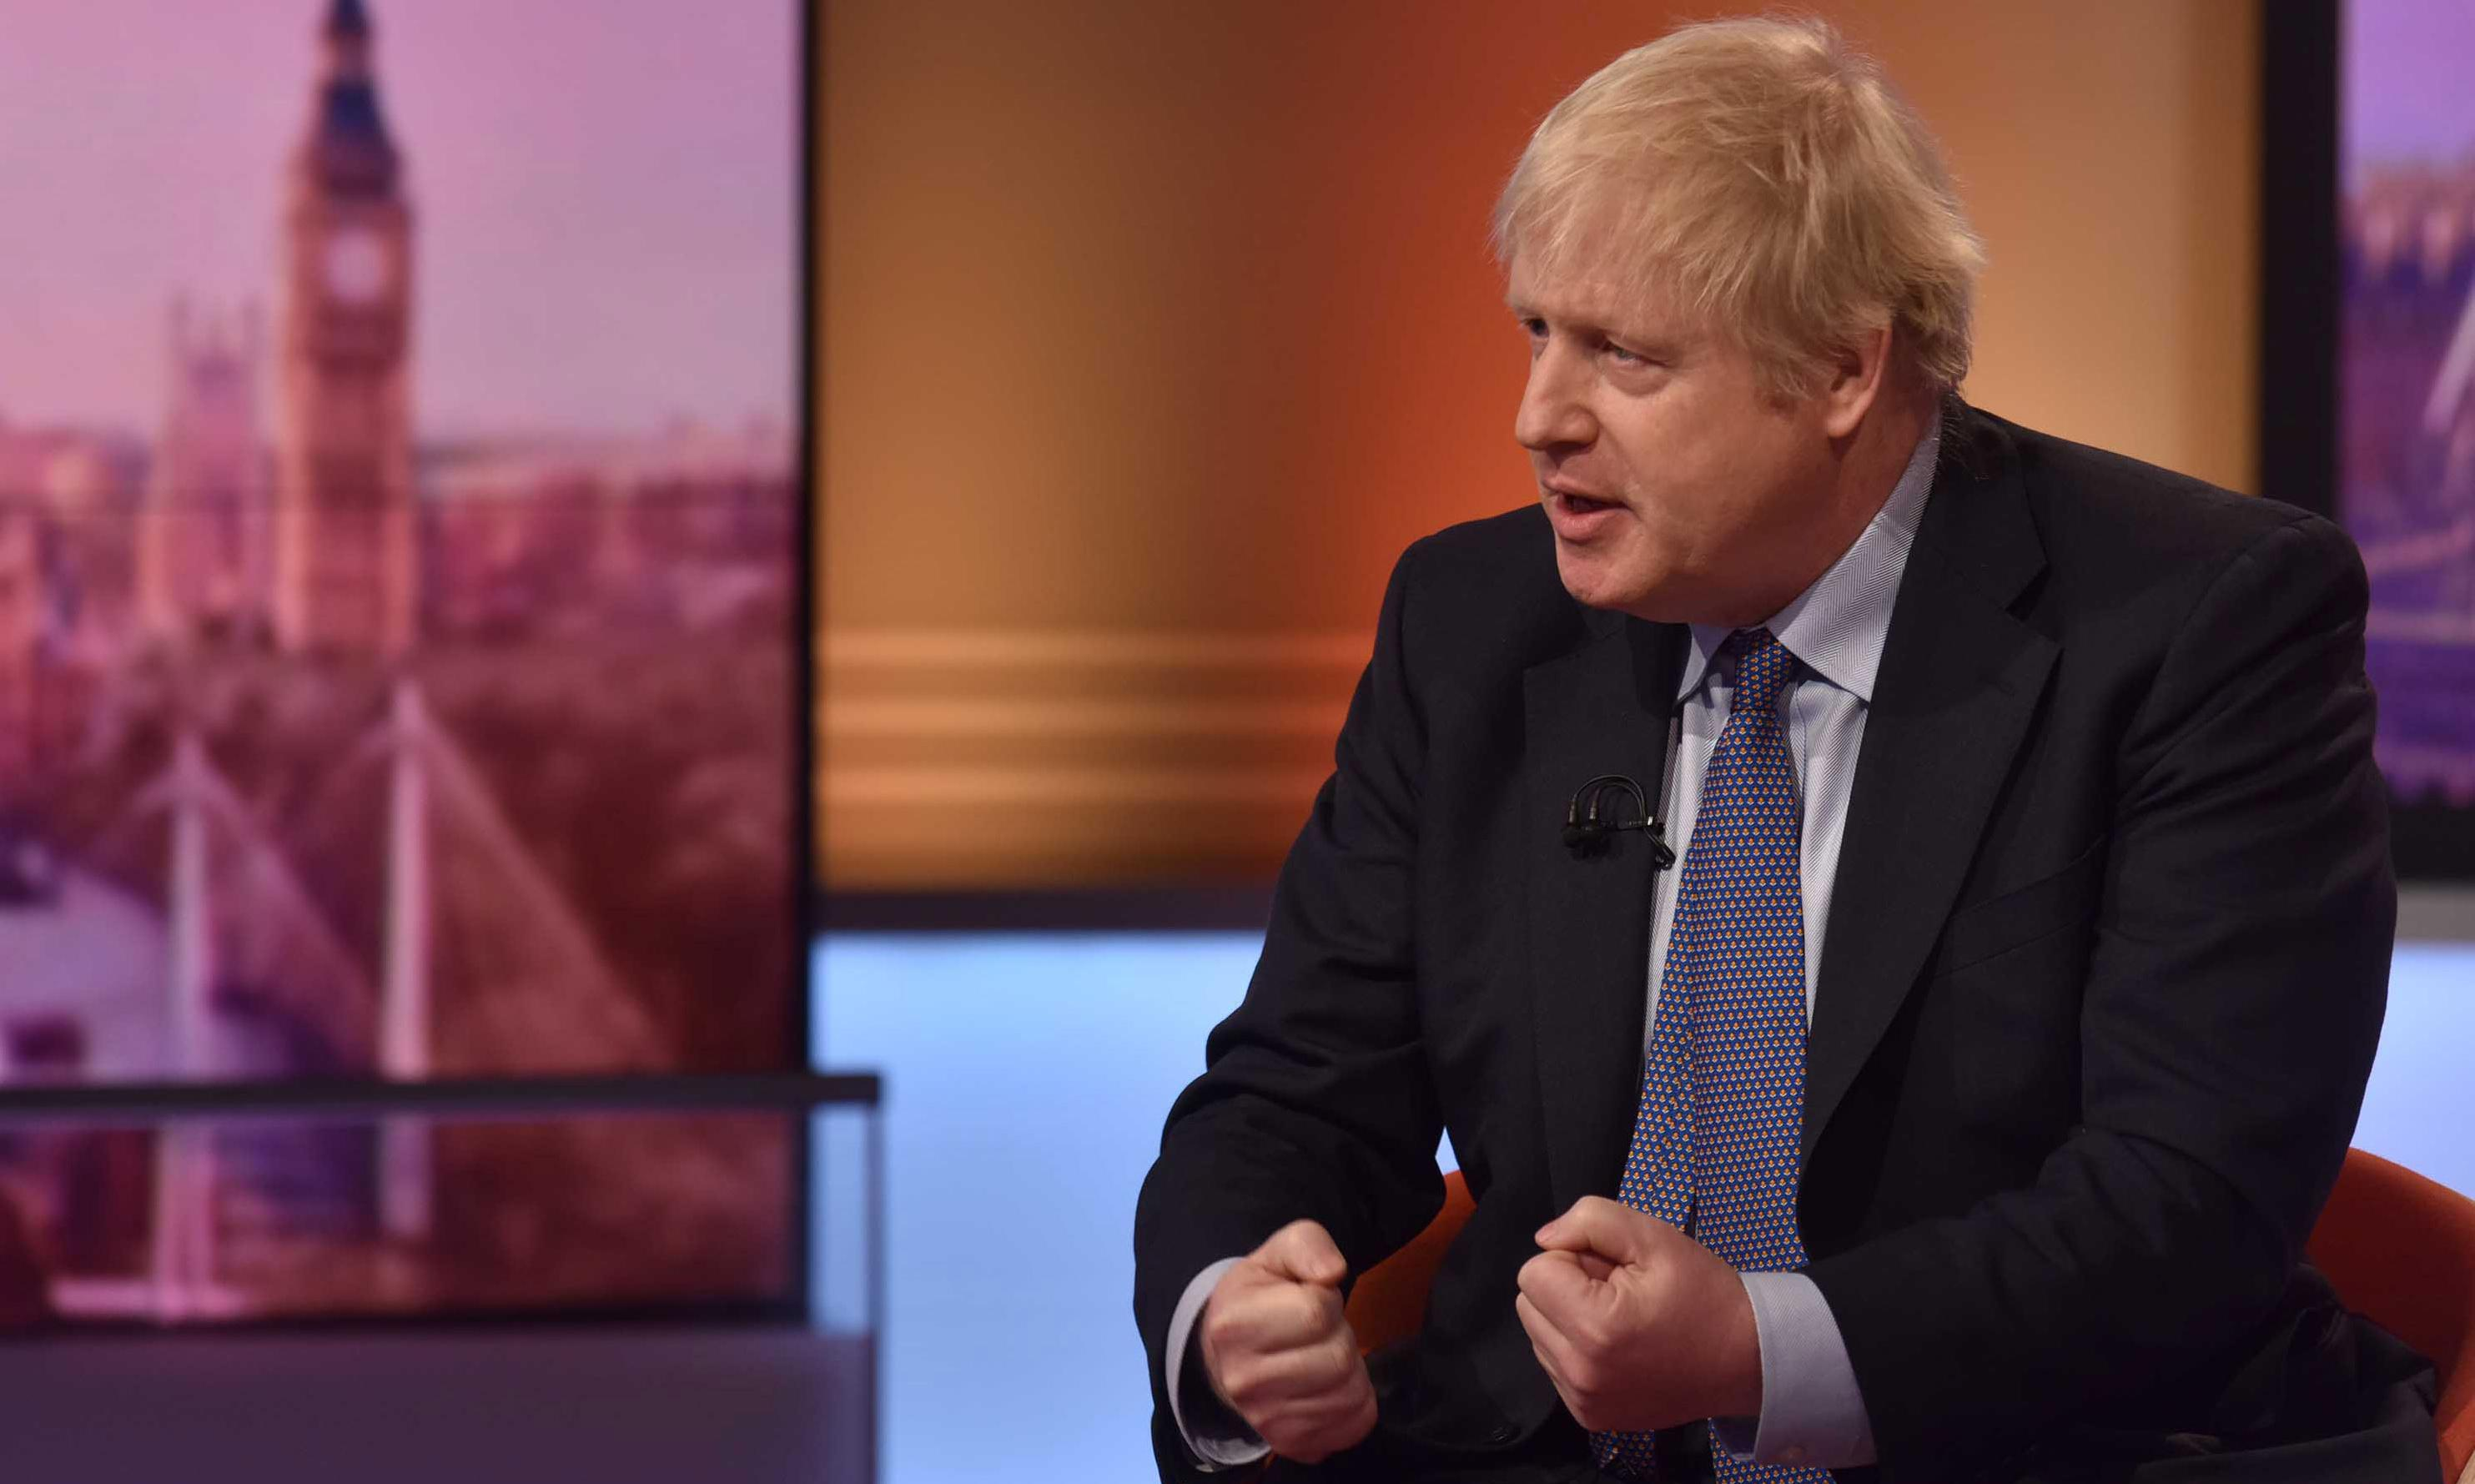 Boris Johnson: a one-trick pony straight out of the political wild west